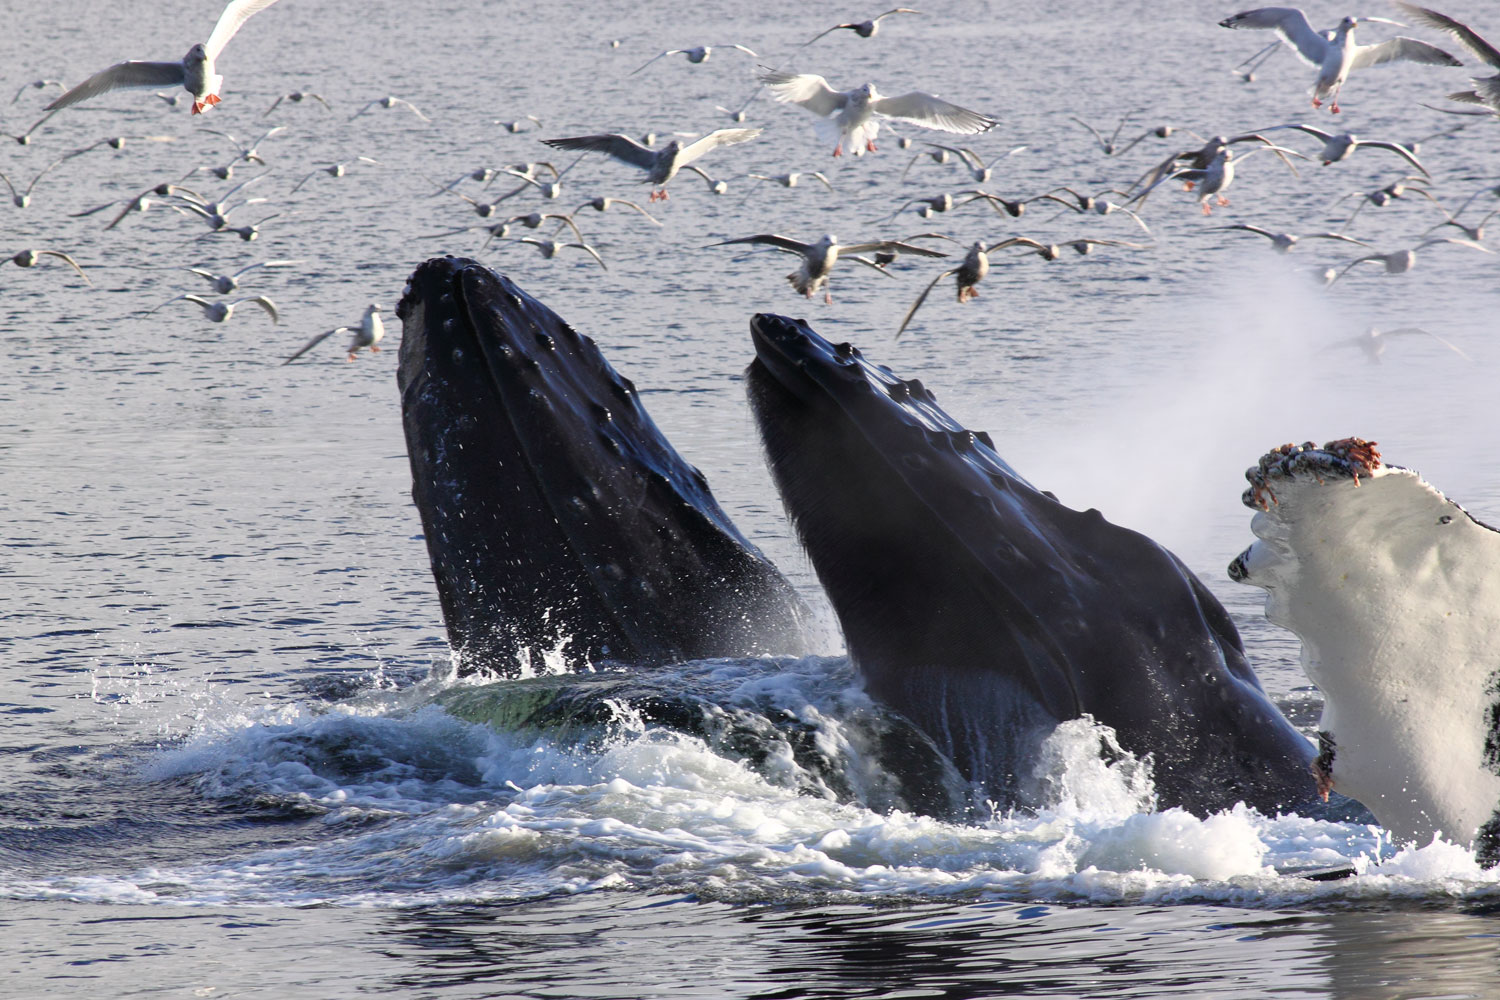 Humpback whales bubblenet feeding